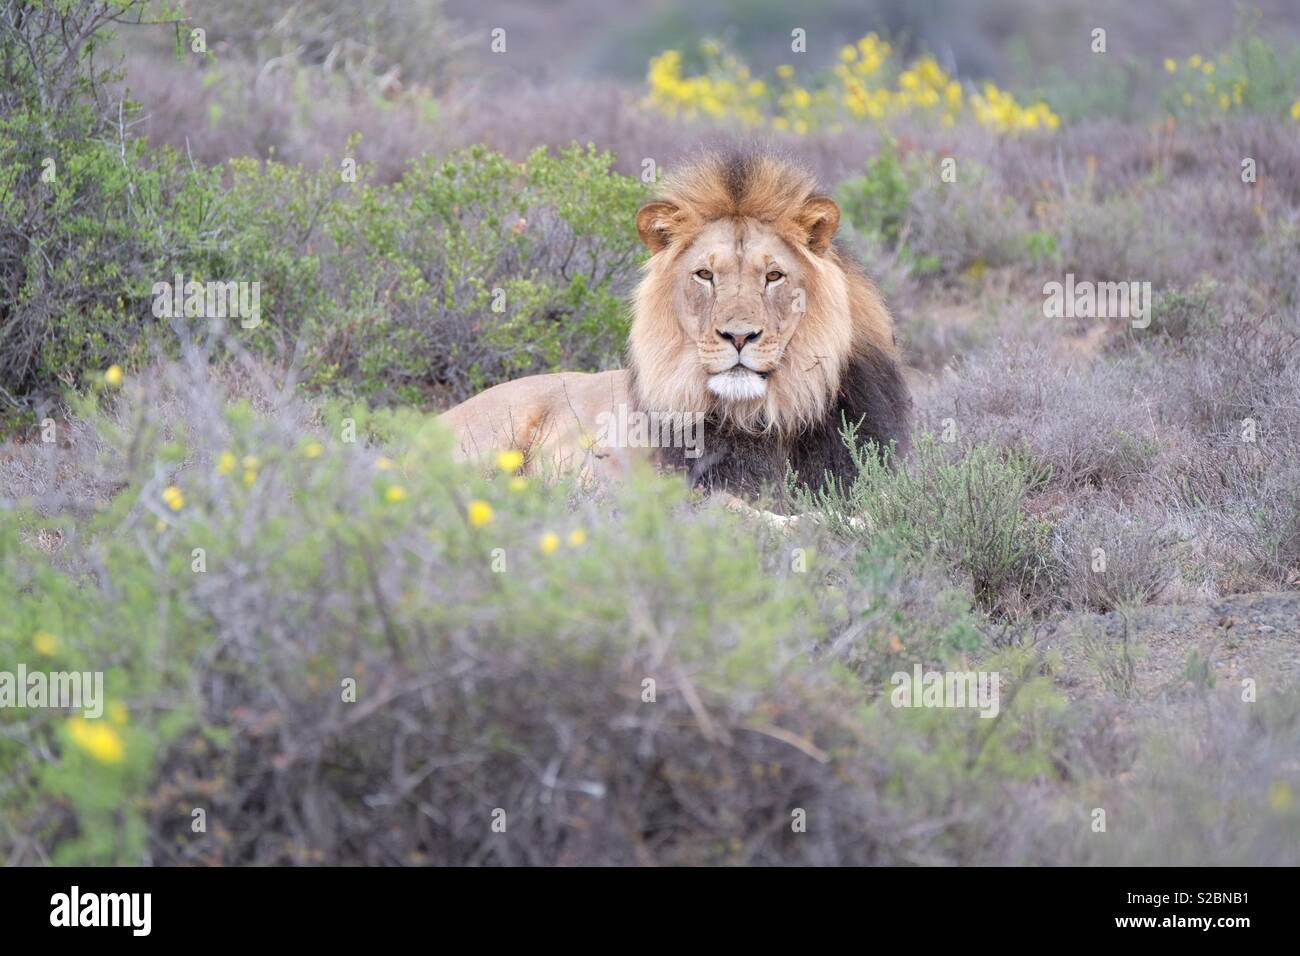 Sylvester the lion - Stock Image